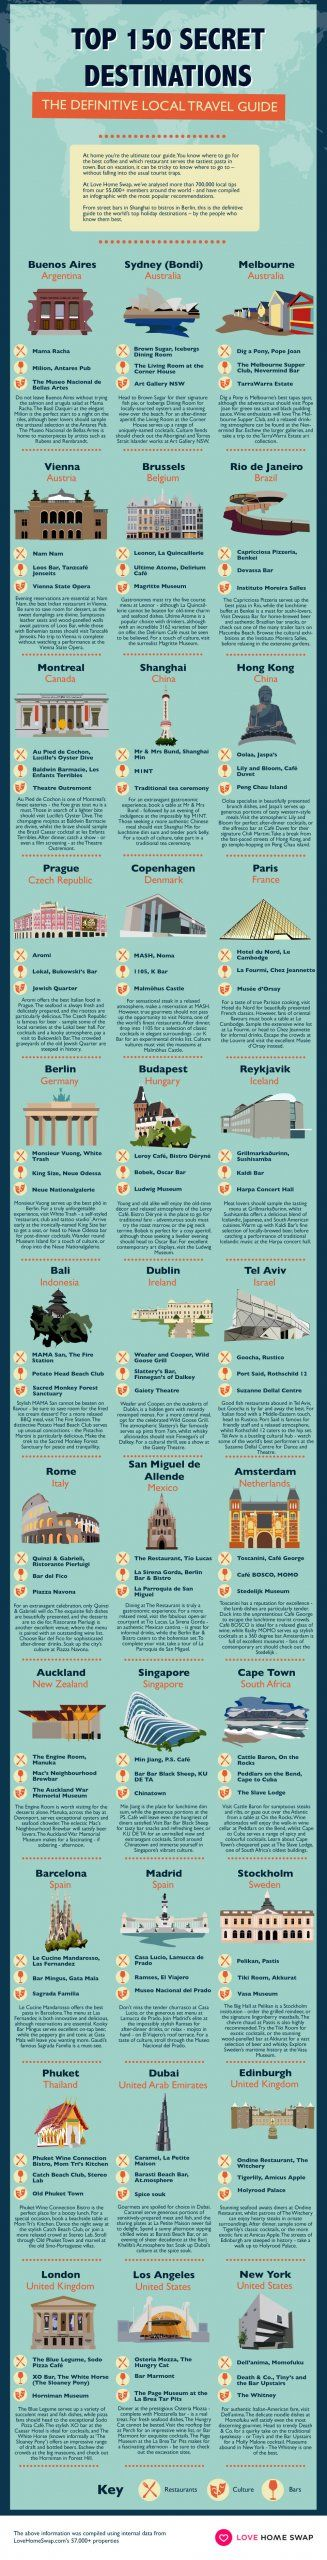 Secret travel destinations infographic from Love Home Swap